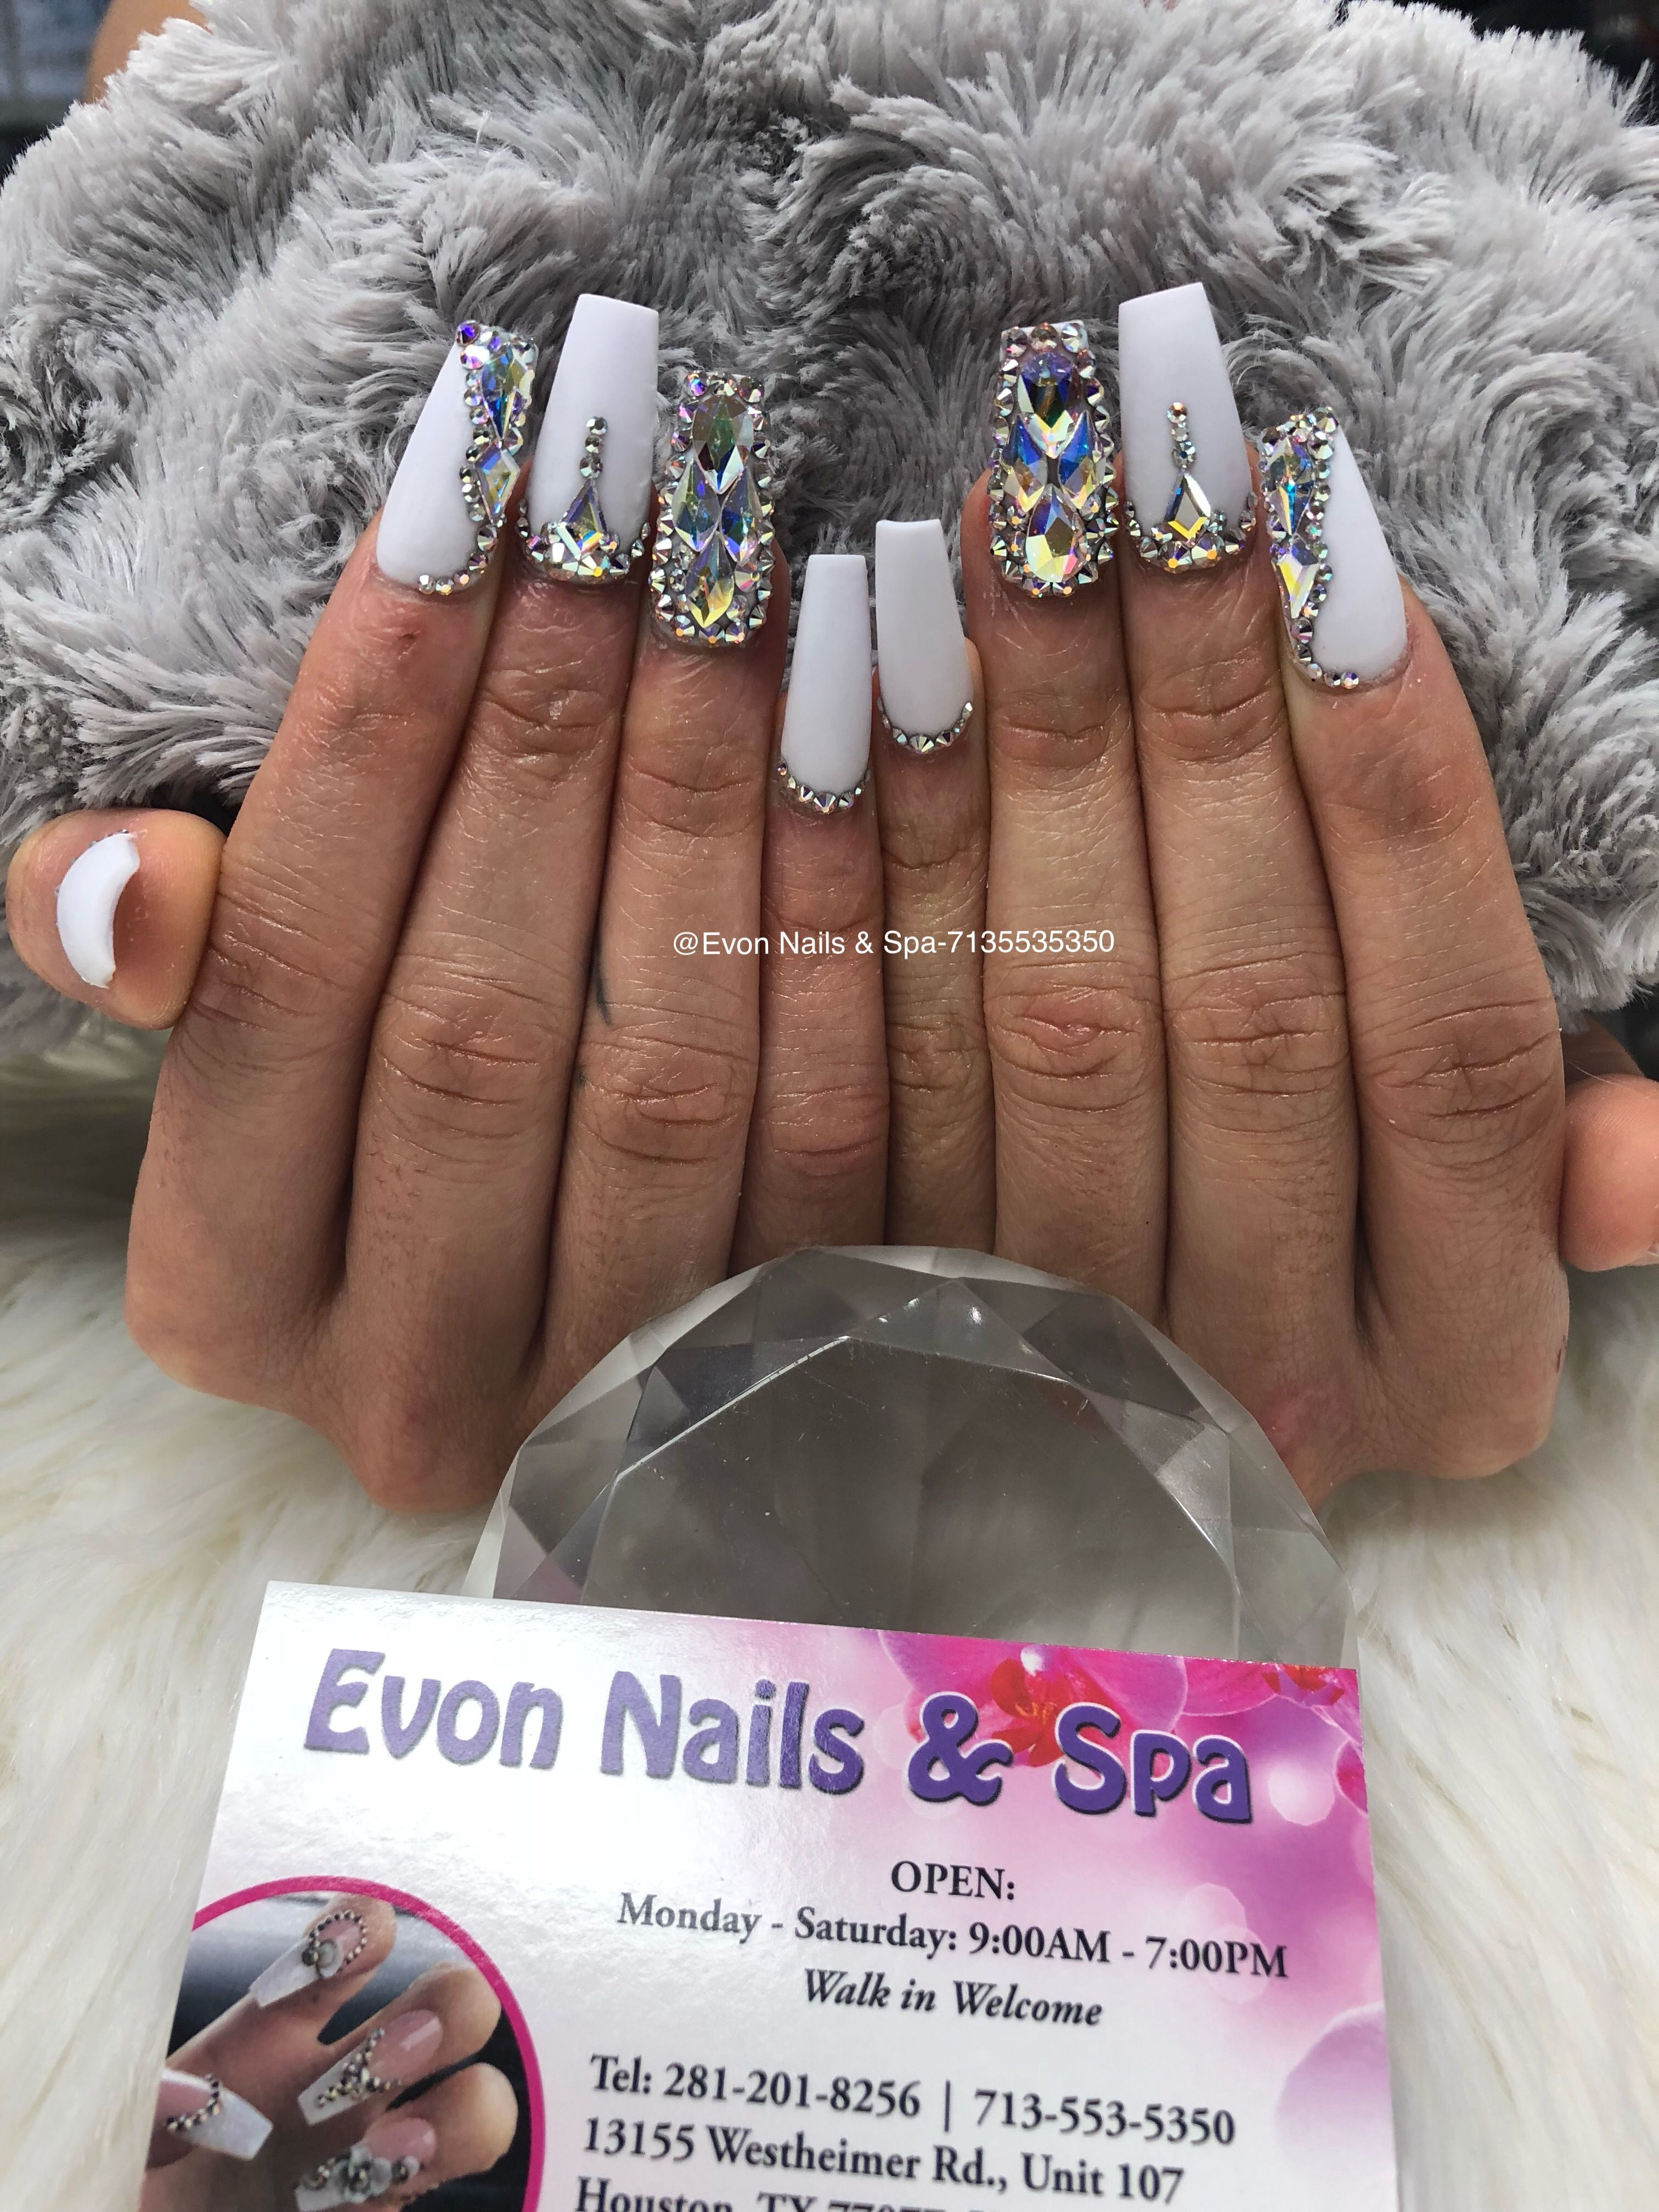 Pin By Evon Nails Spa On Evon Nails Spa Nail Art Ombre